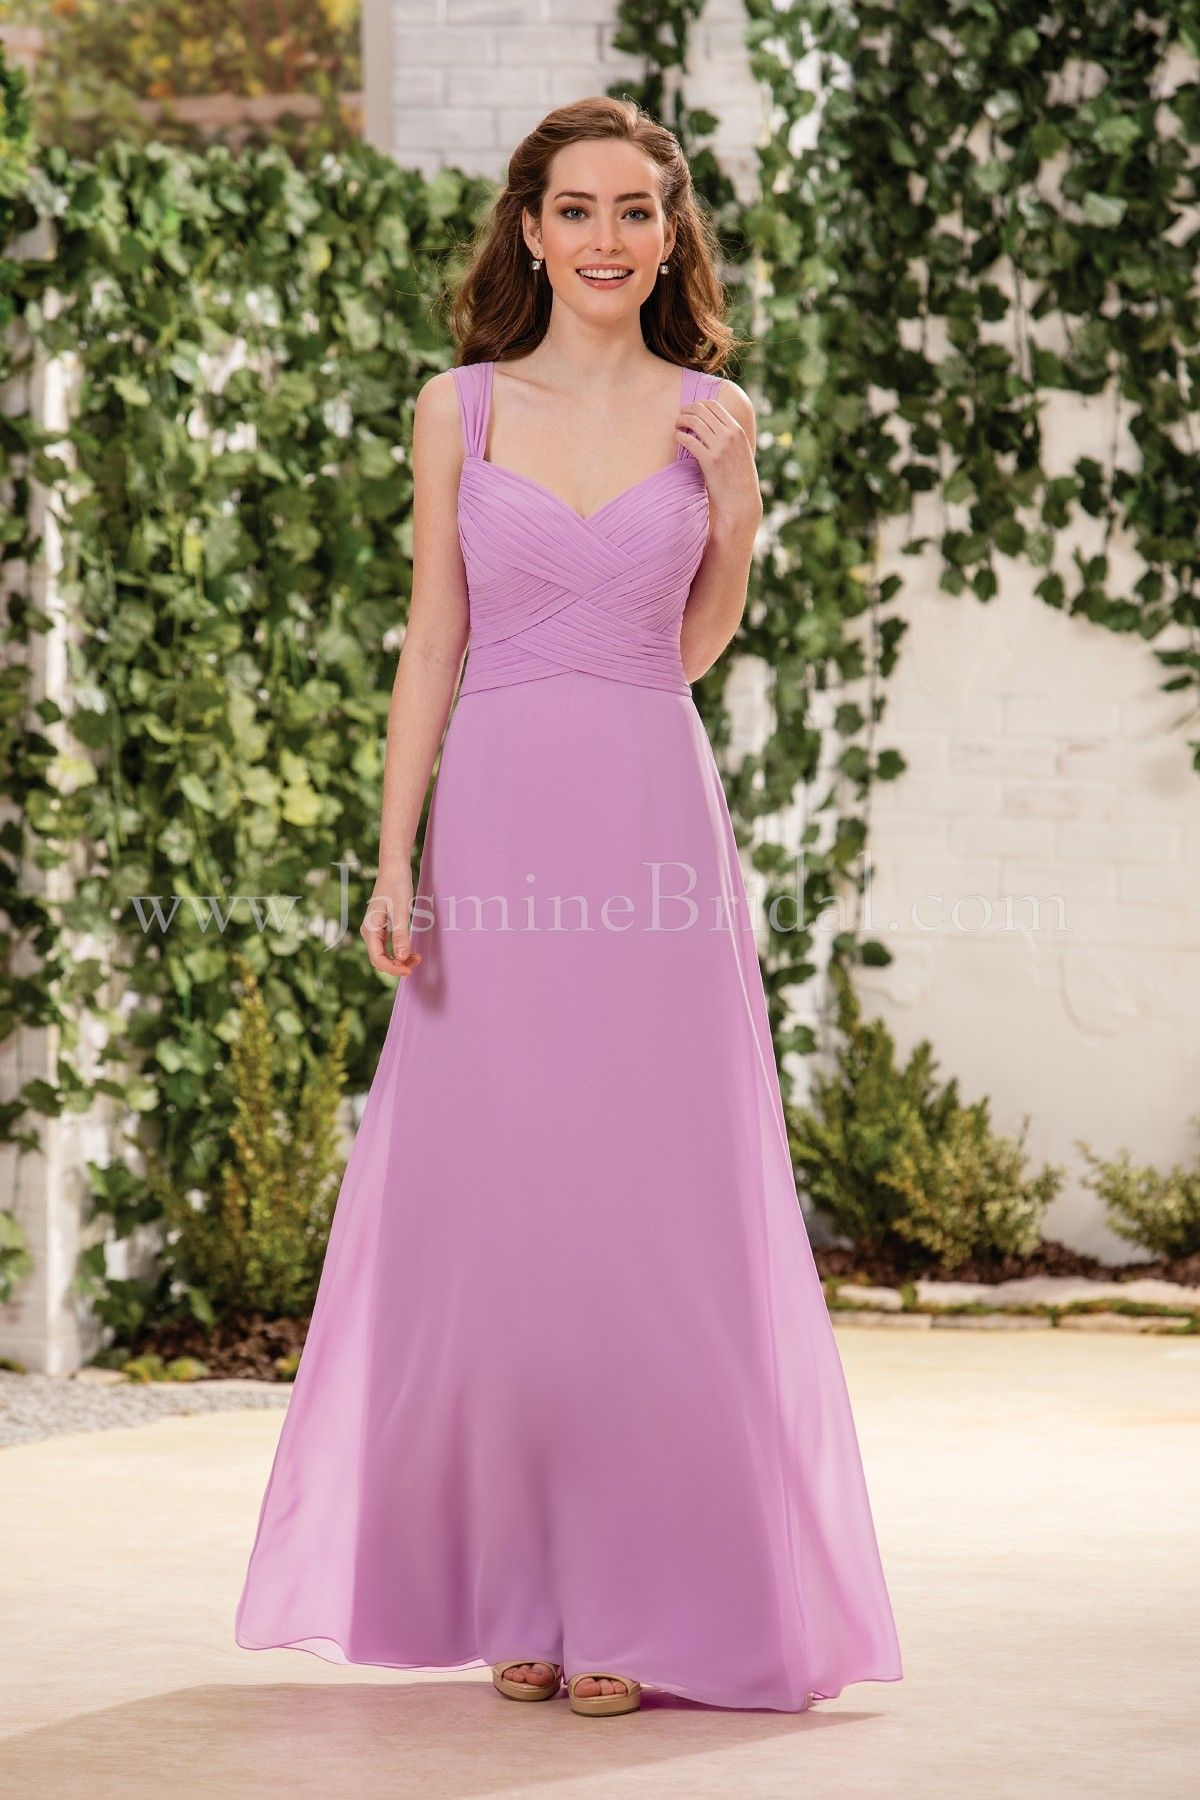 Jasmine bridal bridesmaid dress b2 style b183058 in orchid fall jasmine bridal bridesmaid dress b2 style b183058 in orchid ombrellifo Images